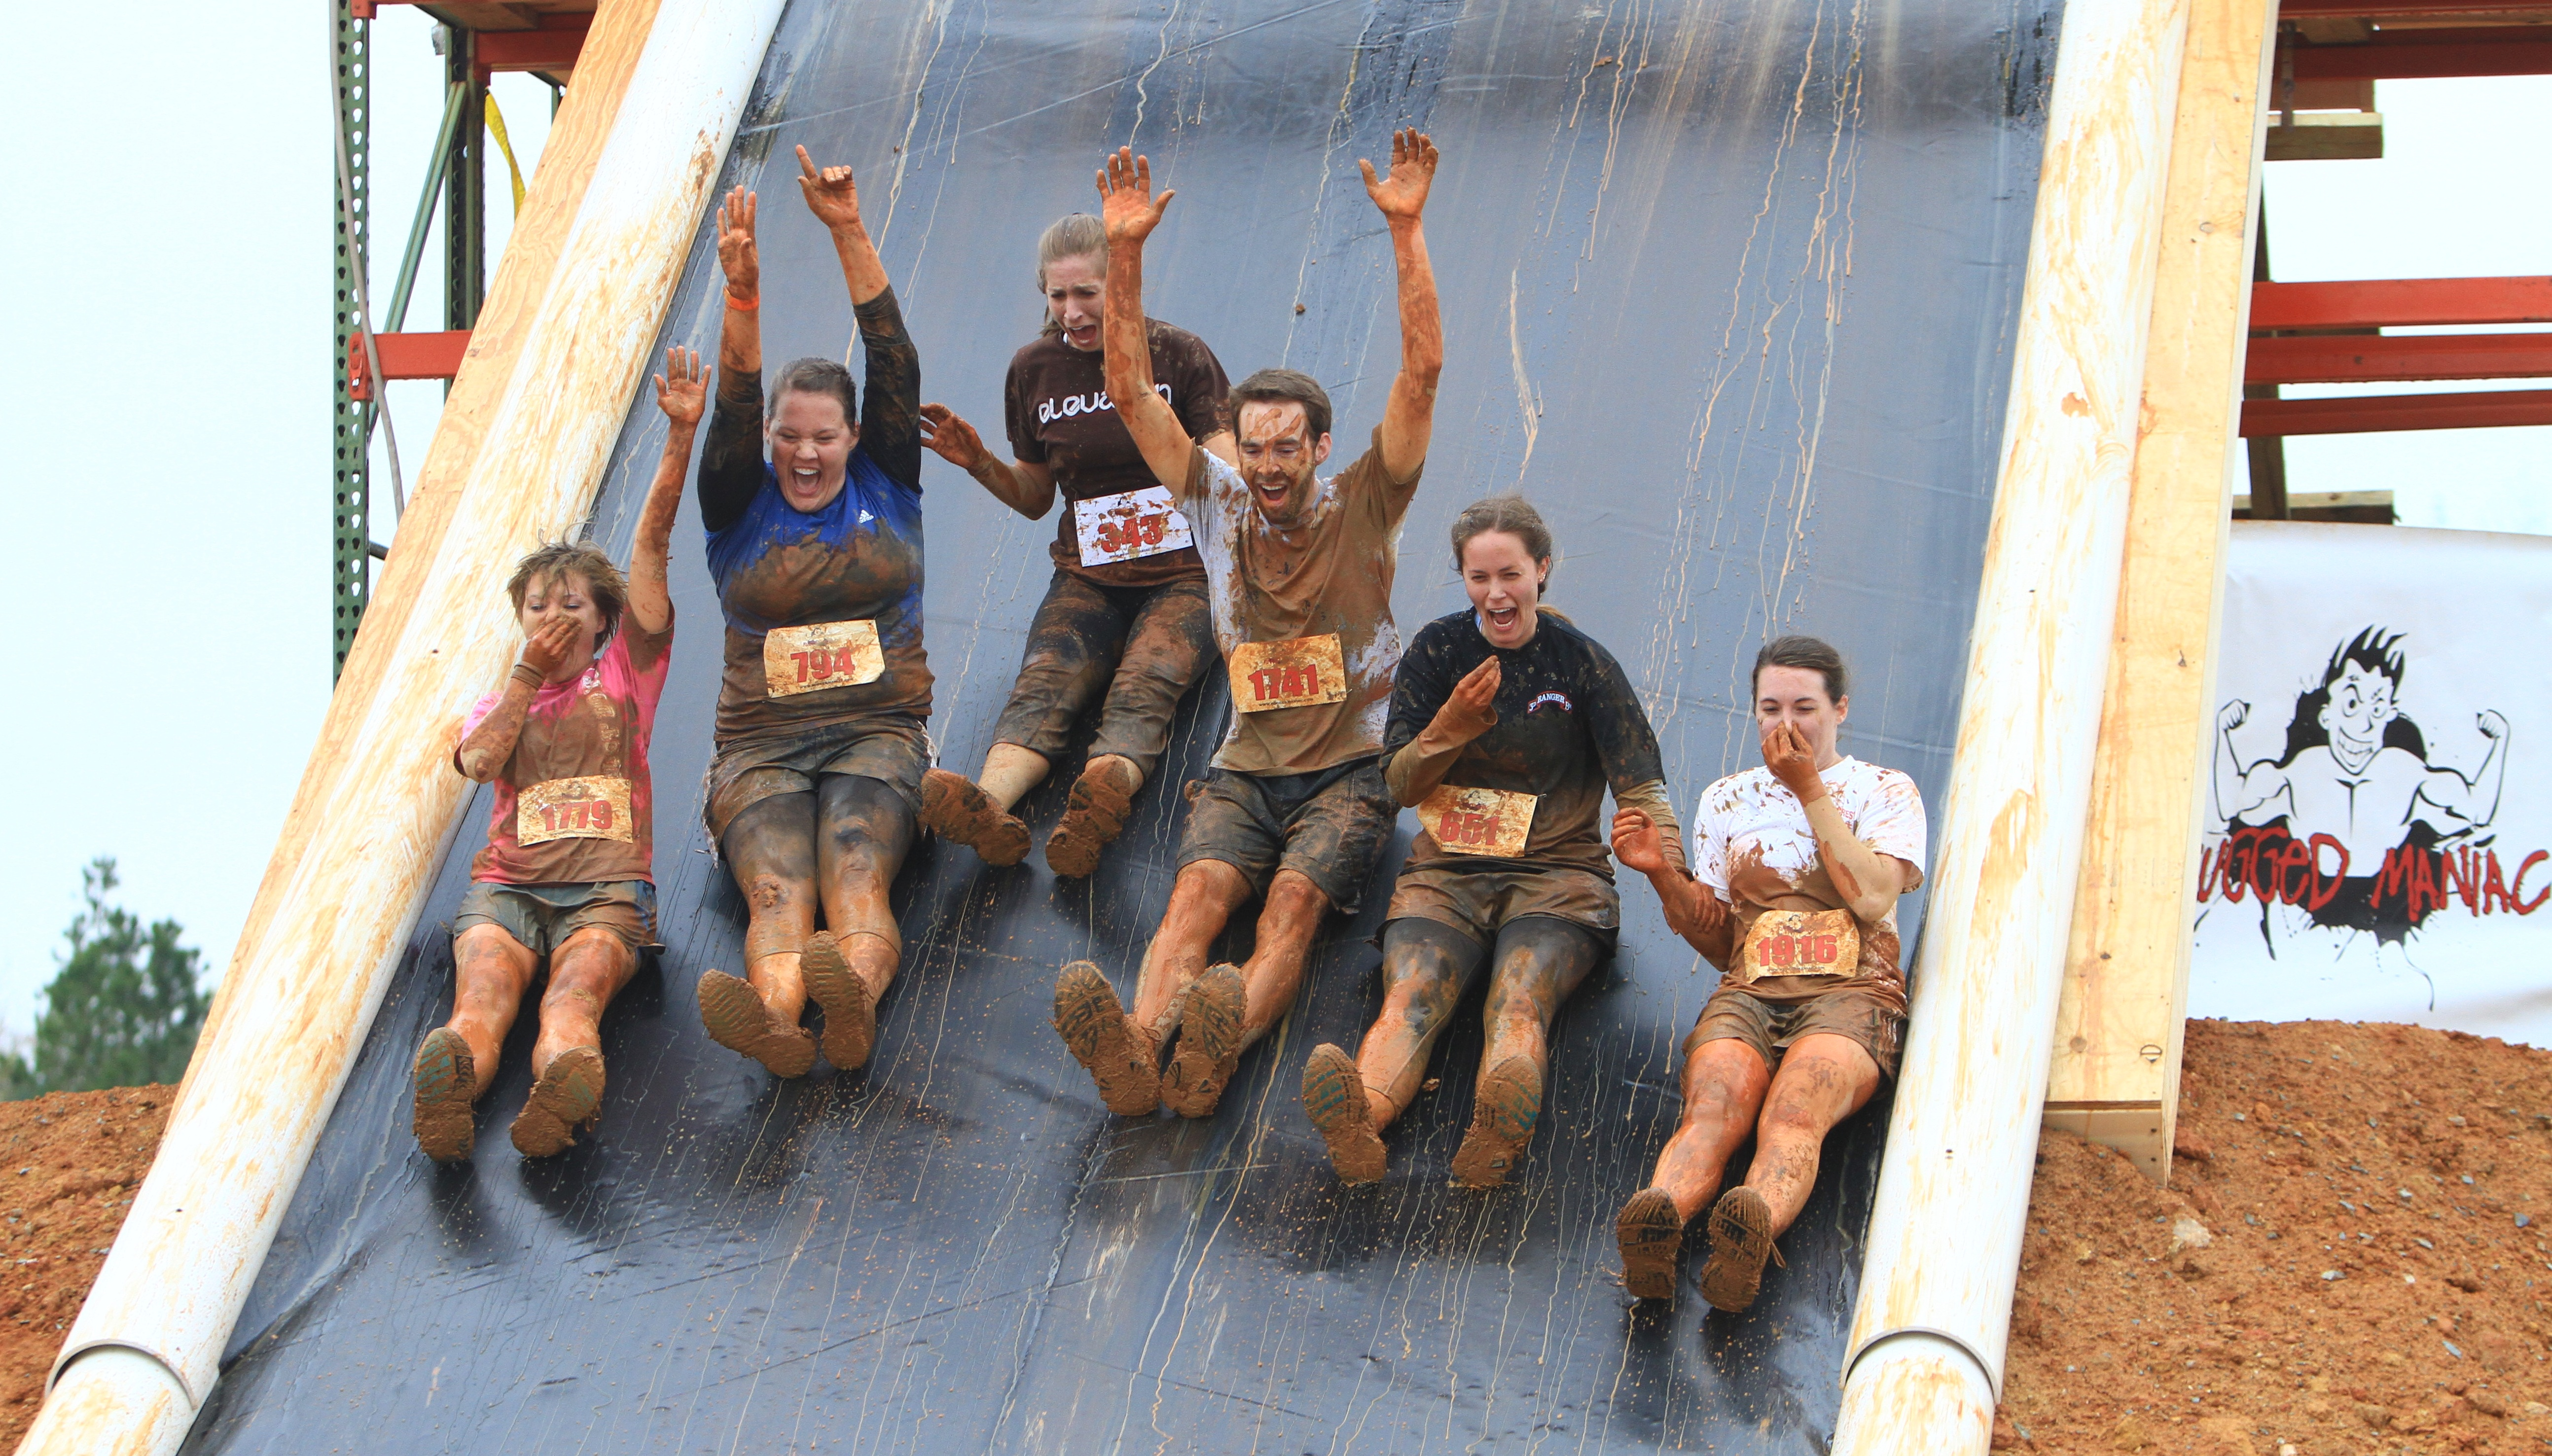 The Set Up For Rugged Maniac Is No Picnic In Park Crew Heads West A Week Before Race To Start Constructing Obstacles